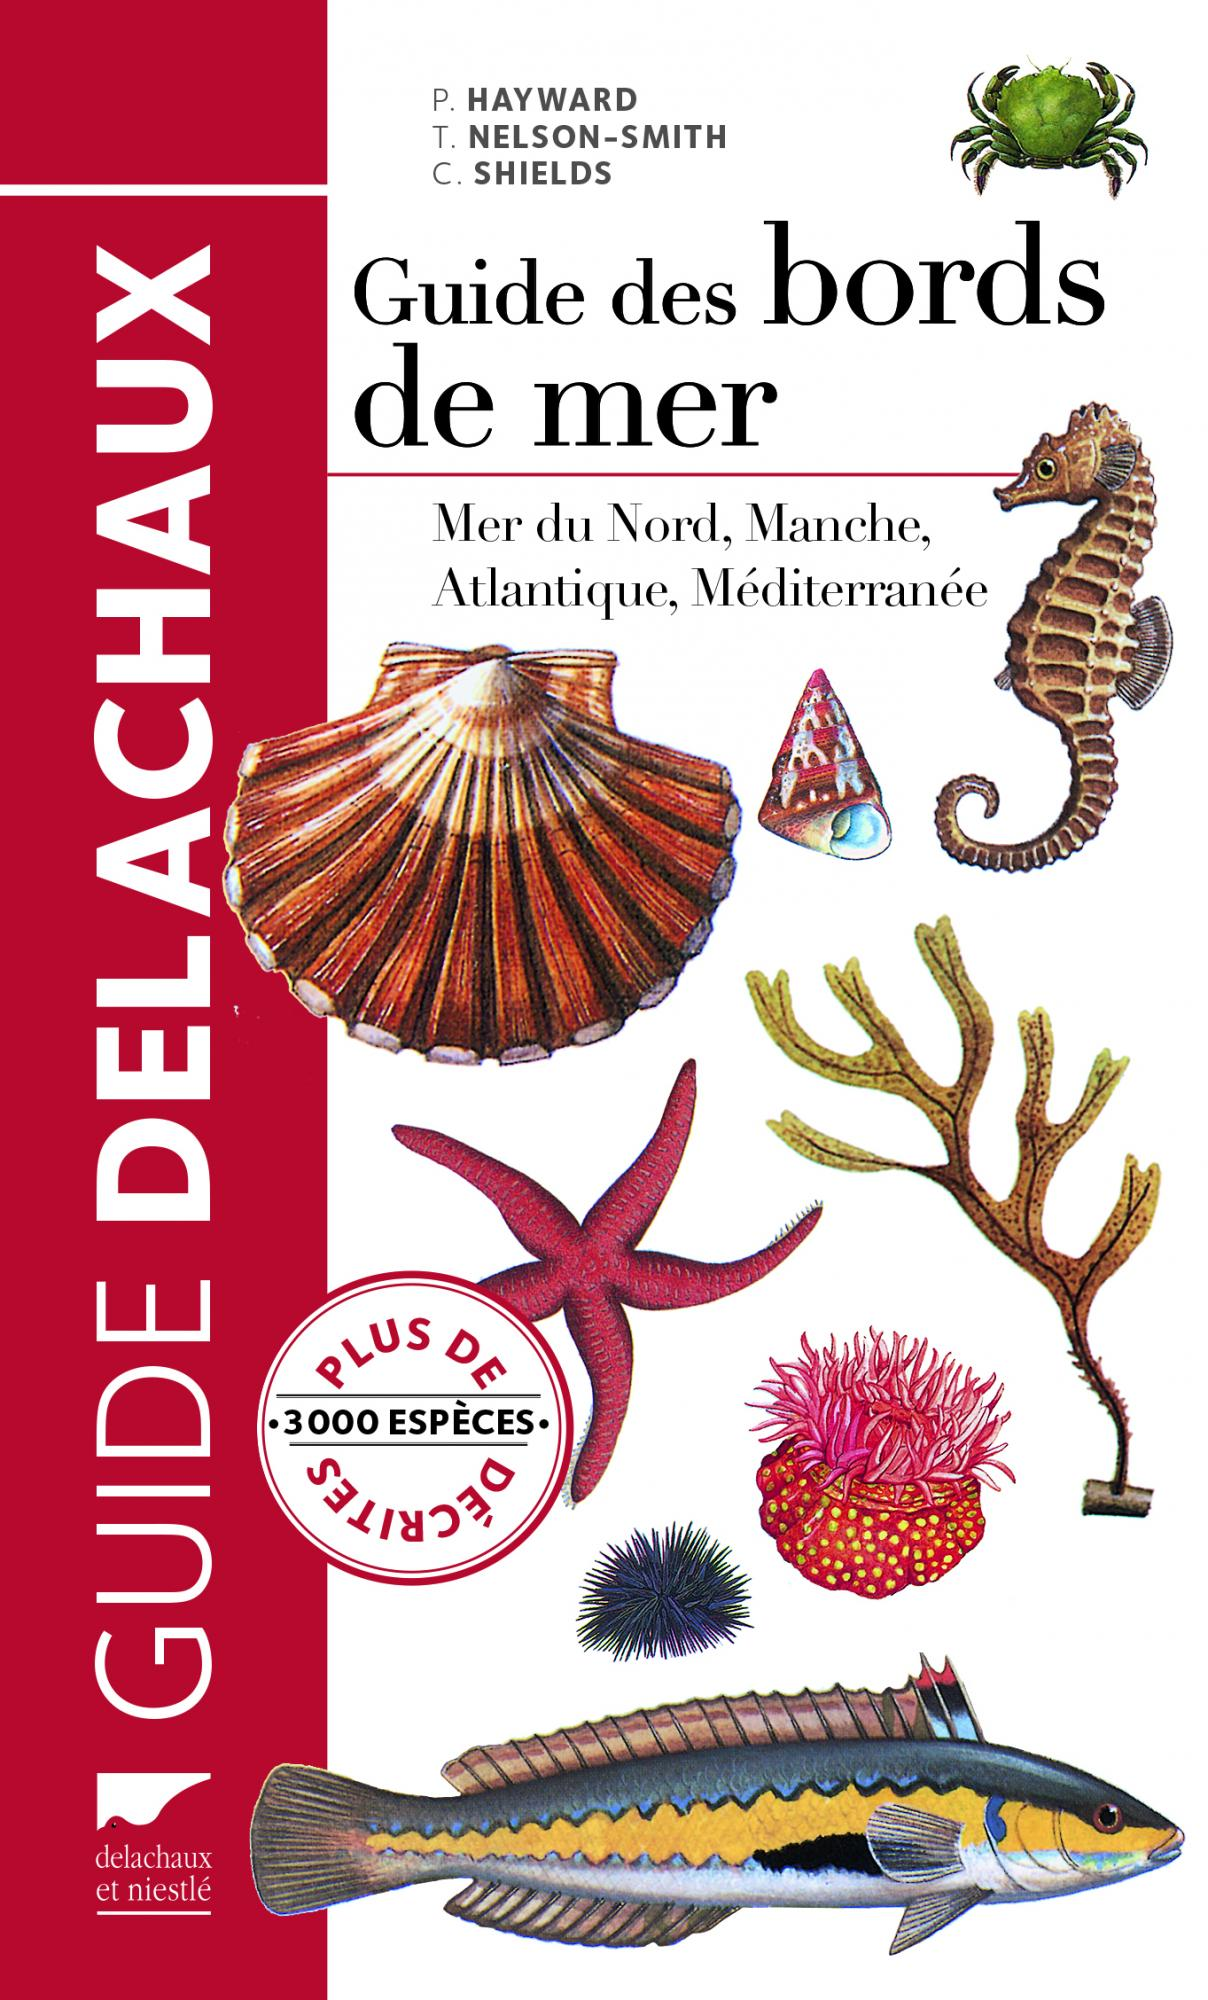 Tony Nelson-Smith, Peter Joseph Hayward, Chris Shields, Guide des bords de mer, Delachaux et Niestlé